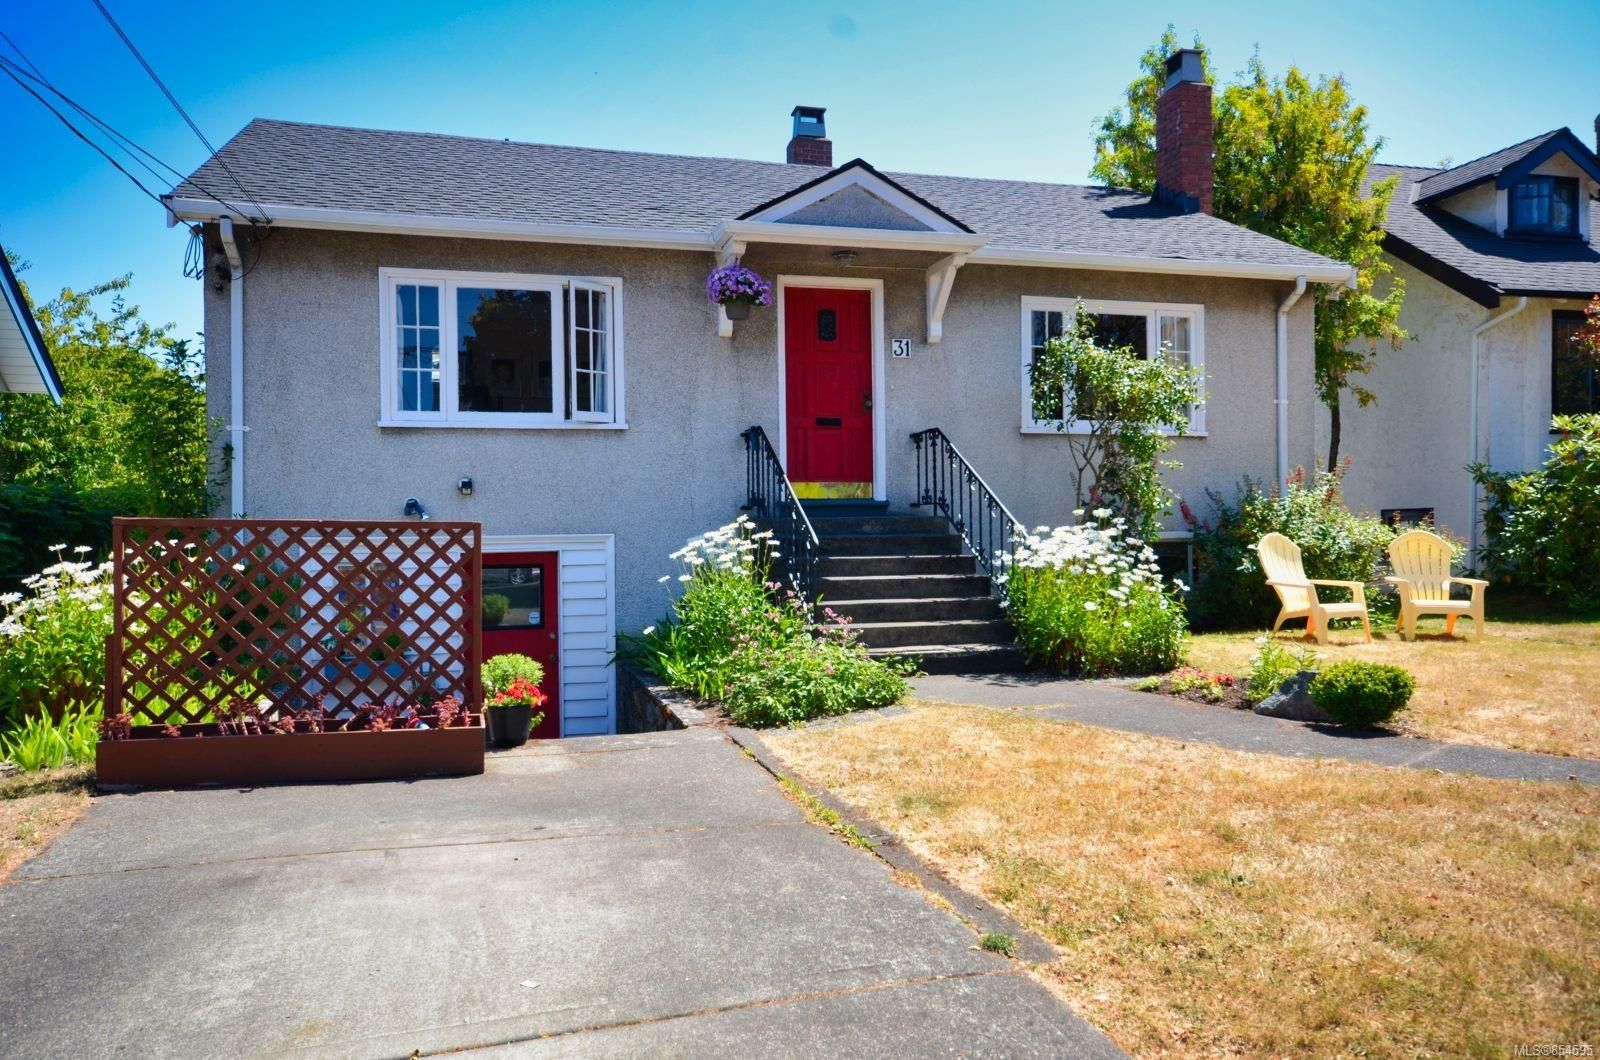 Main Photo: 31 Linden Ave in : Vi Fairfield West House for sale (Victoria)  : MLS®# 854595